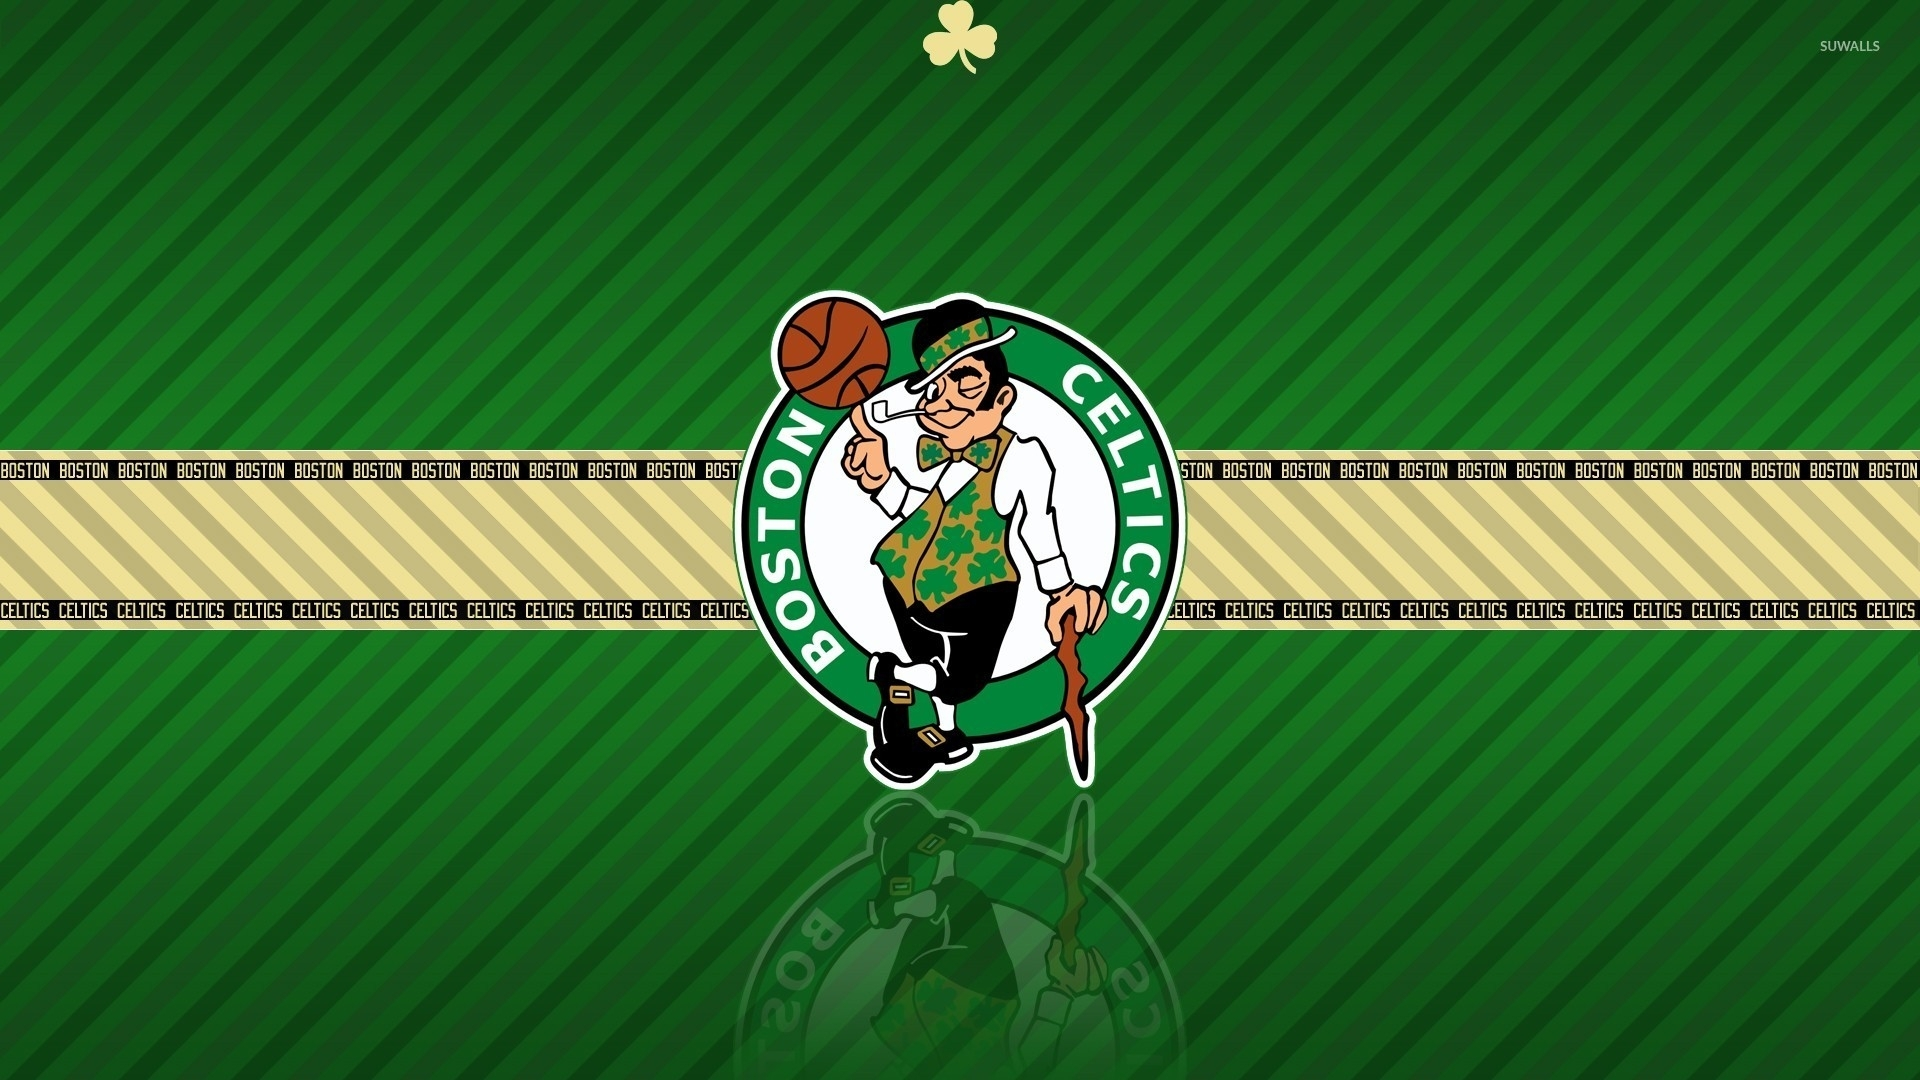 boston celtics logo wallpaper - sport wallpapers - #49624